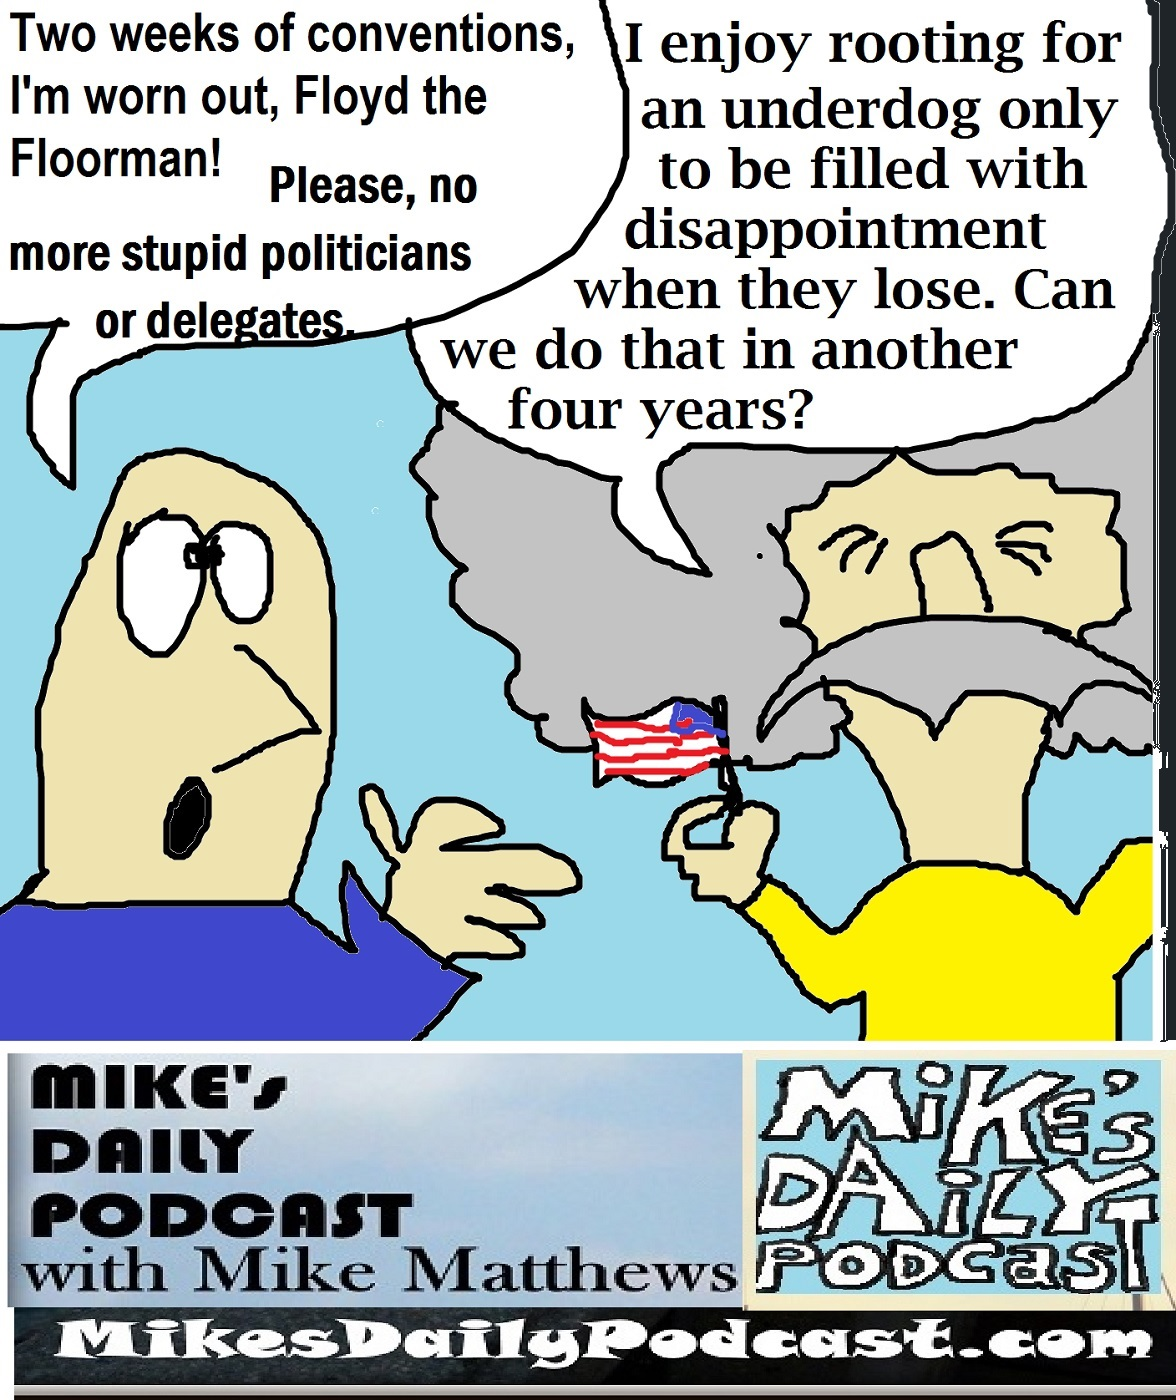 MIKEs DAILY PODCAST 1140 Mikes and Floyd the Floorman flag